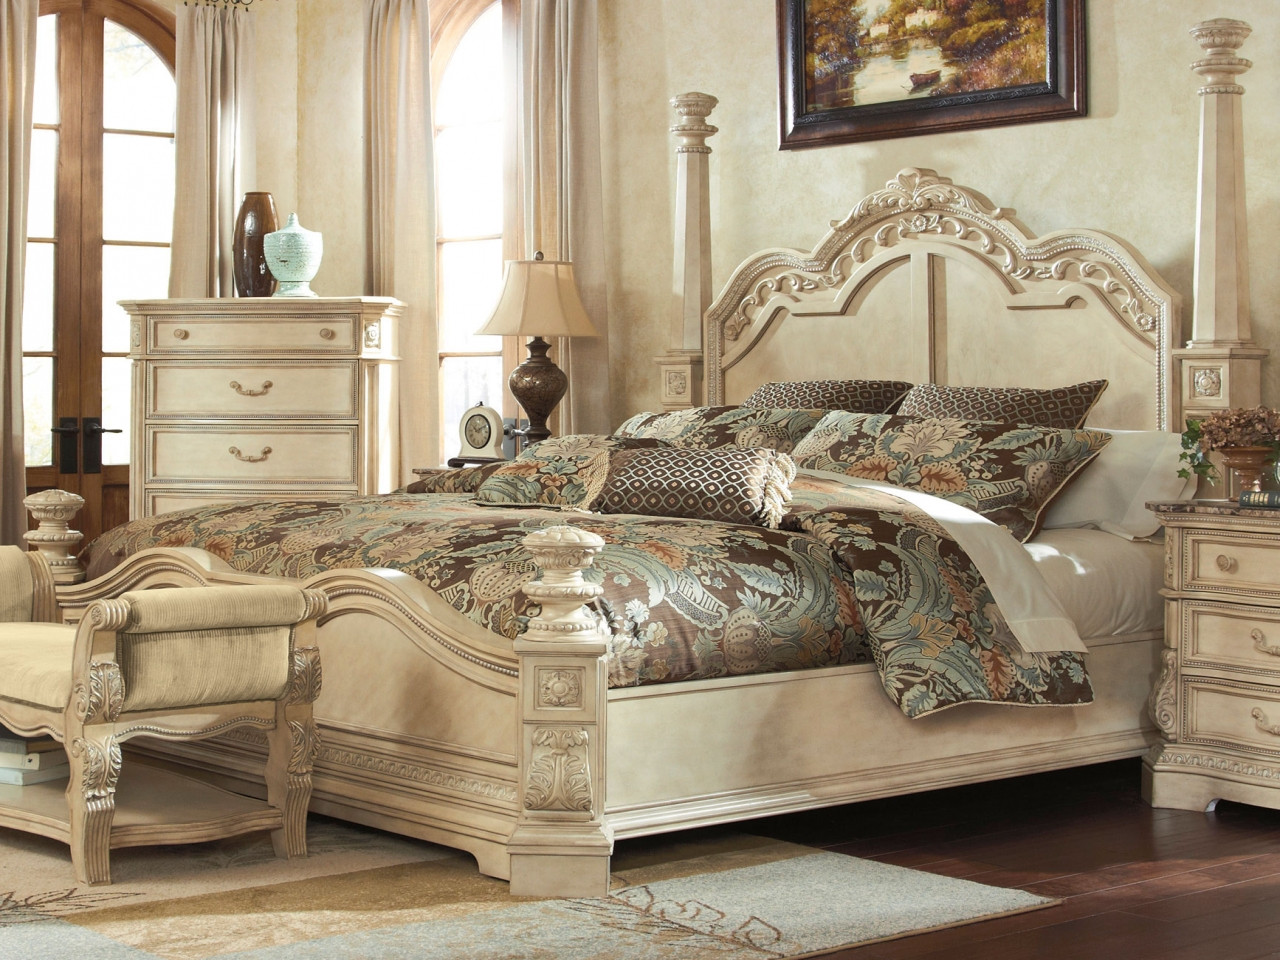 Best ideas about Ashley Bedroom Sets . Save or Pin Old bedroom furniture ashley furniture millennium bedroom Now.